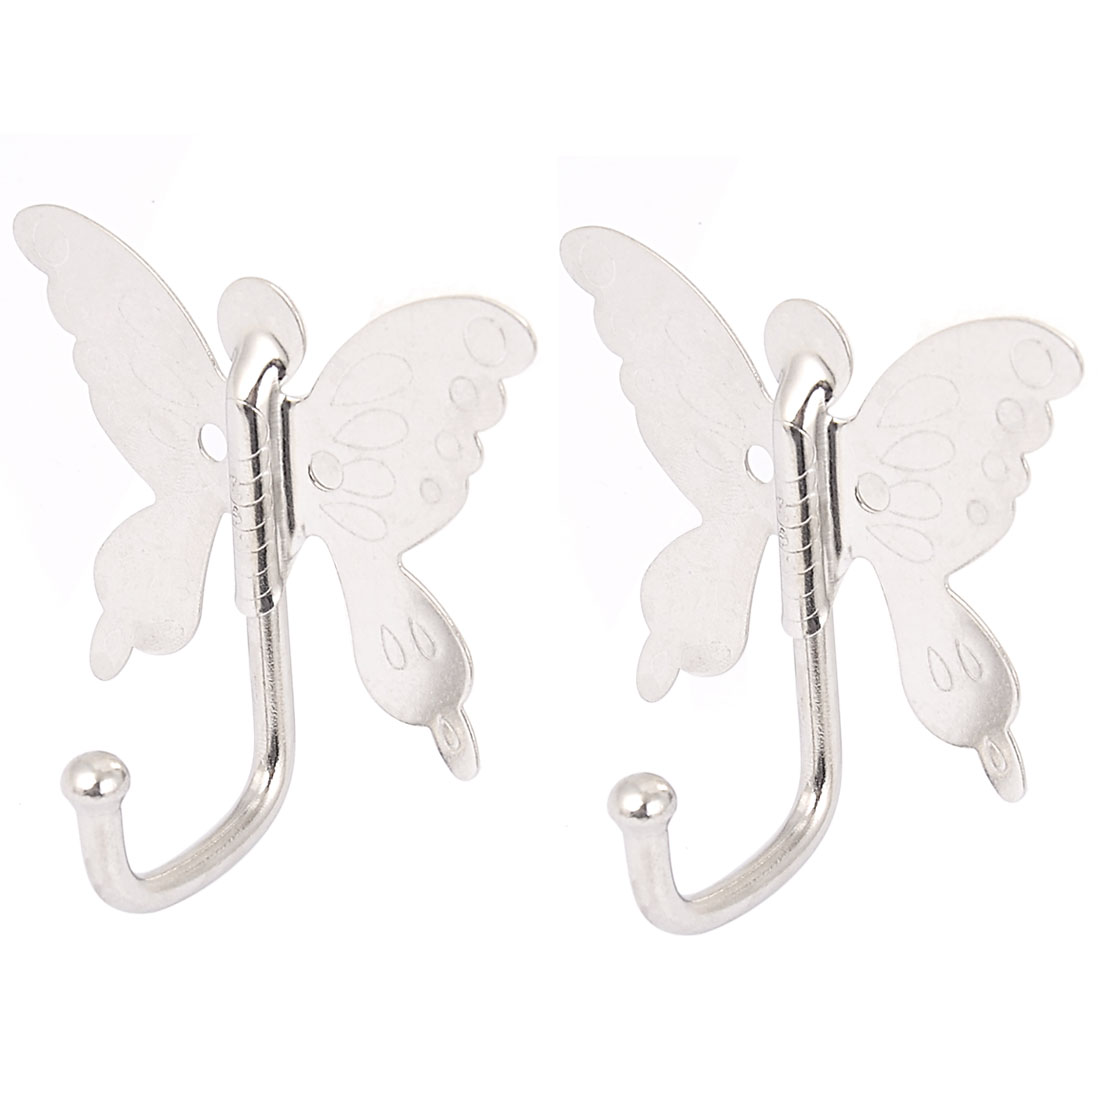 Bedroom Bathroom Butterfly Style Wall Mounted Cloth Towel Hook Hanger 2pcs - image 4 of 4